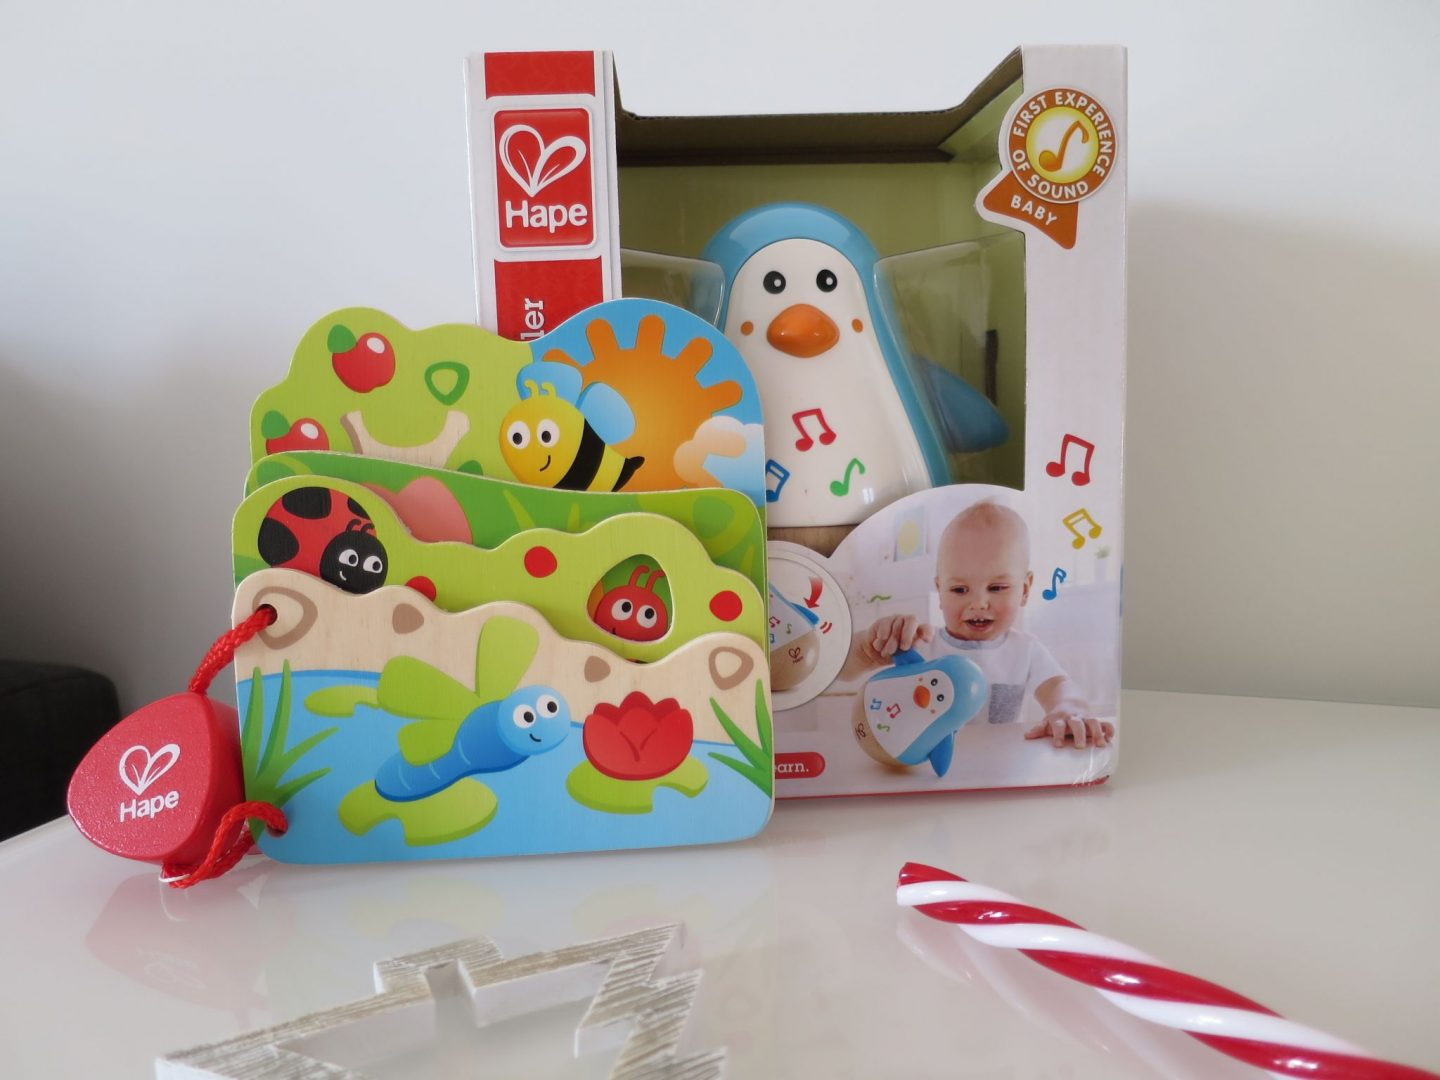 Hape Bug book and Hape Musical Penguin